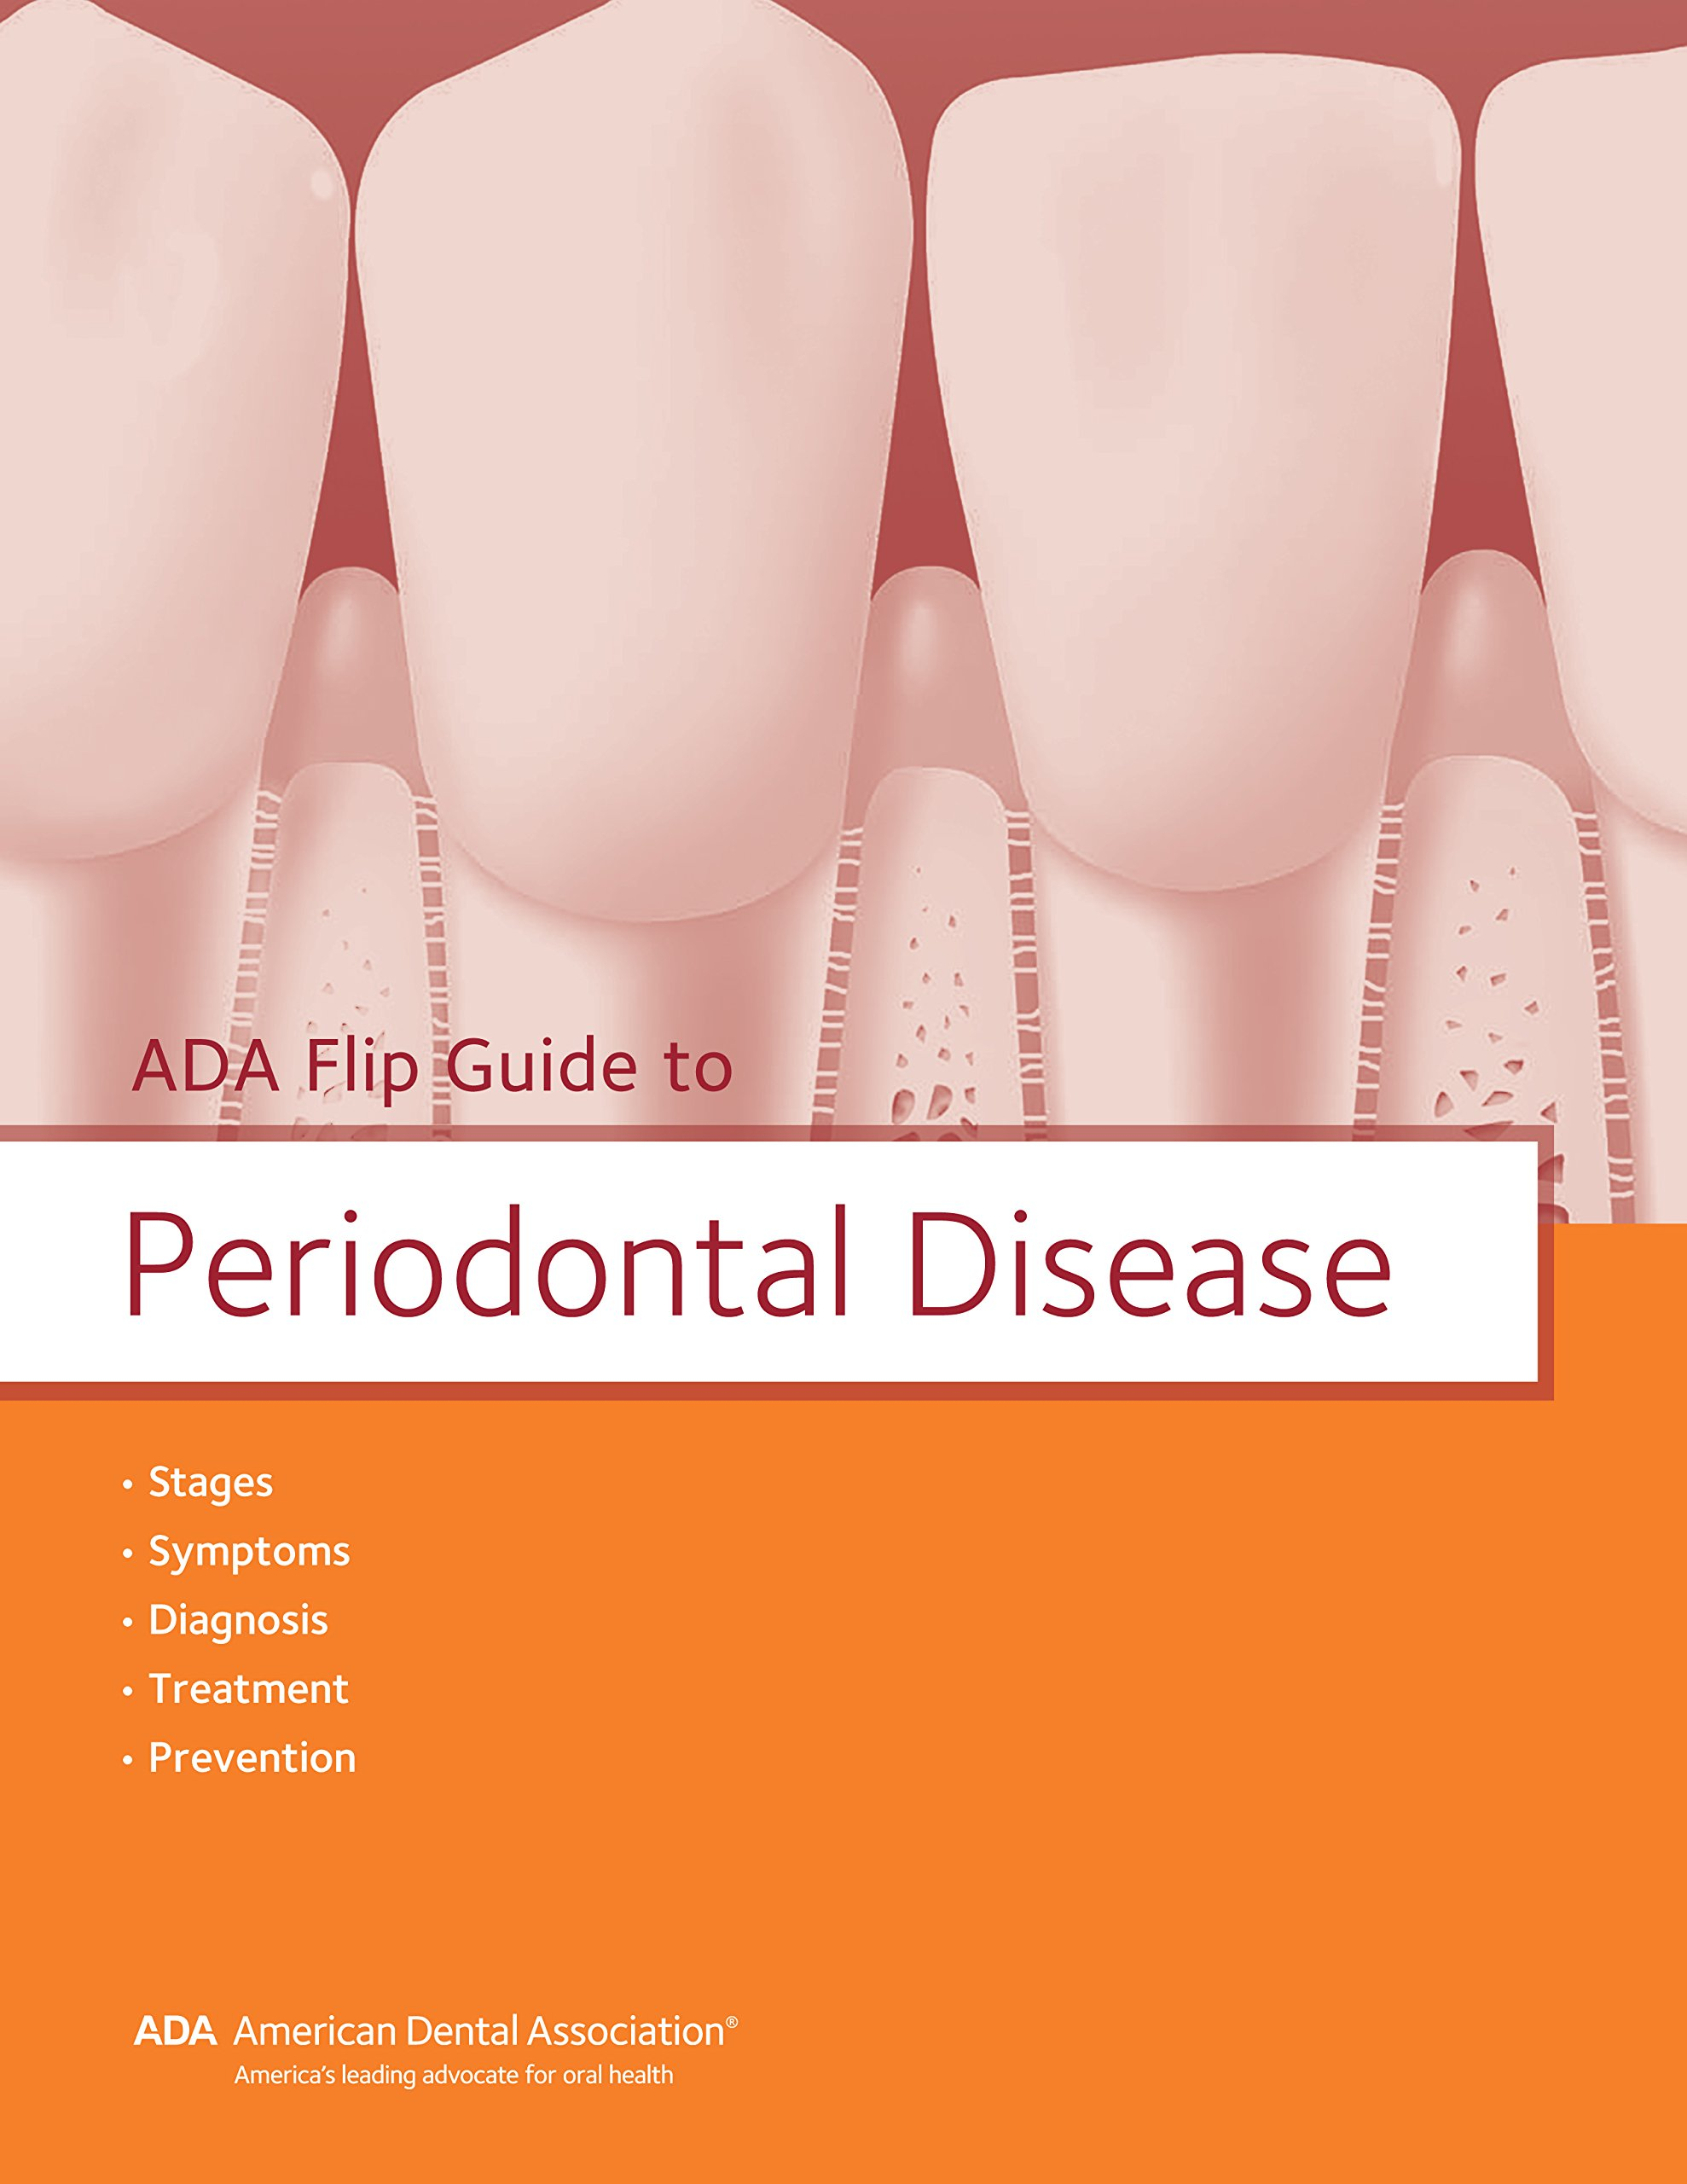 ADA Flip Guide to Periodontal Disease (ADA Flip Guides)